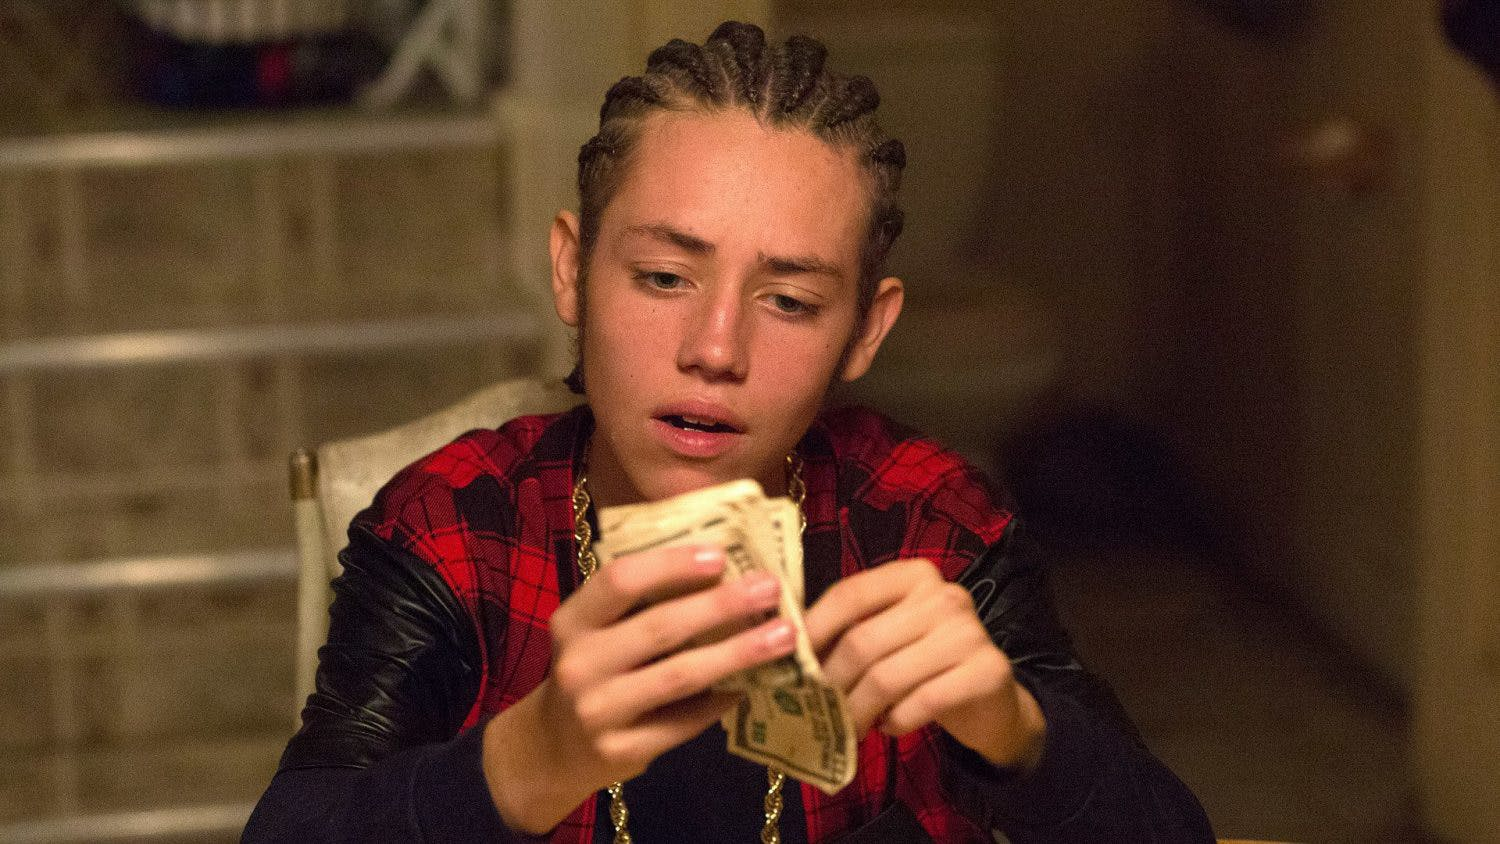 Shameless star Ethan Cutkosky was arrested for smoking weed and driving and gets a DUI